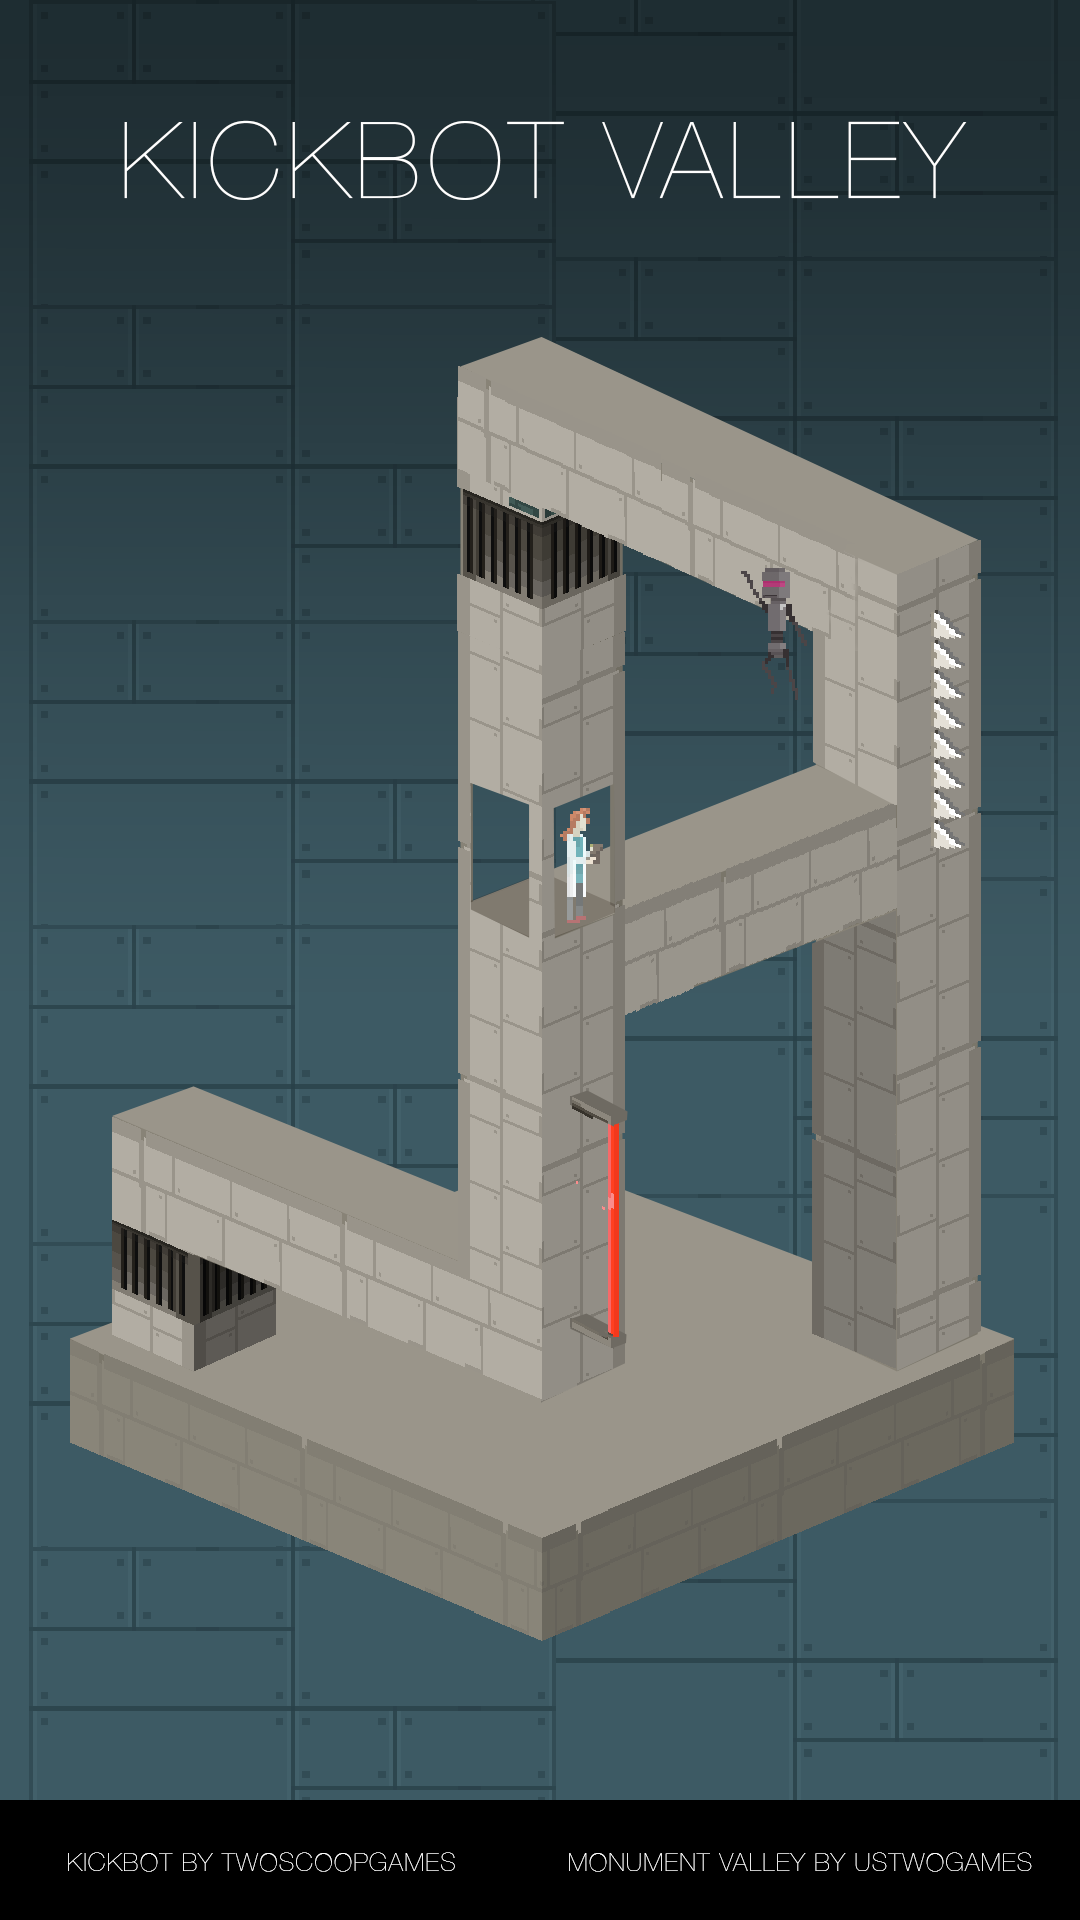 Monument Valley Kickbot fan art mashup by Alex Bezuska